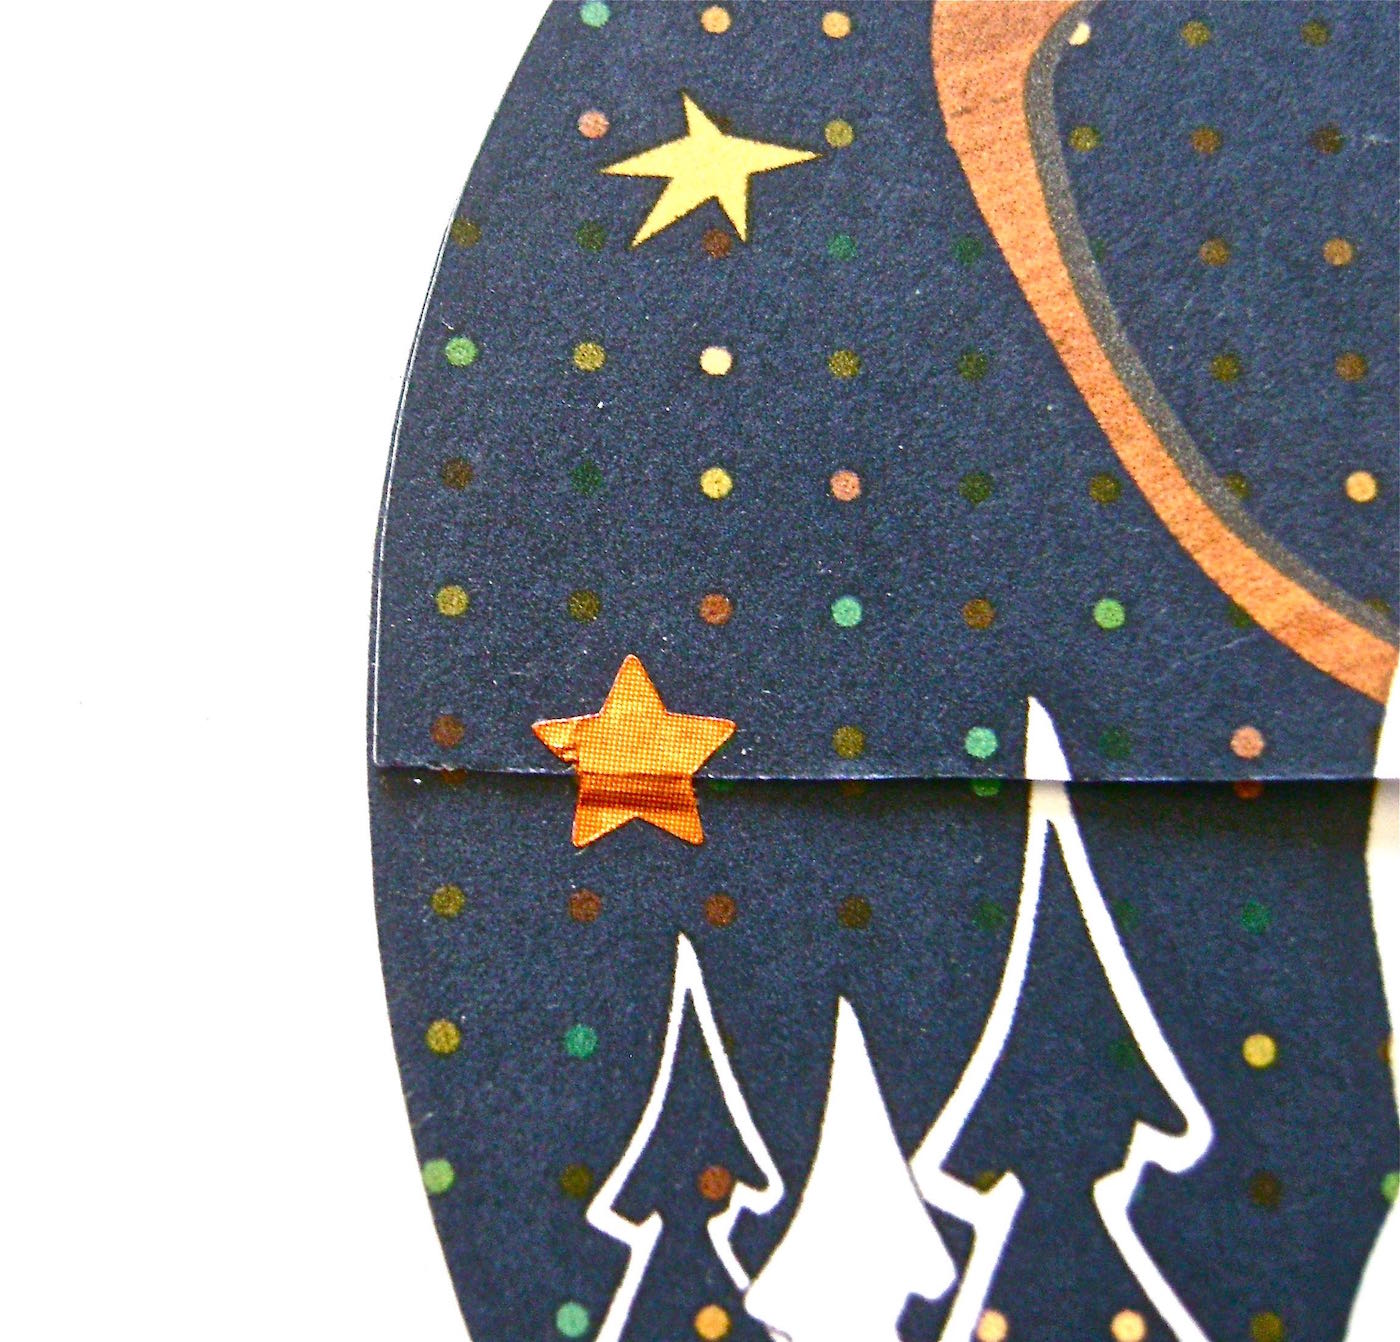 step 11- Insert a gift card in the holder. Close the flap and secure it with a star sticker on the right and left flap edges.